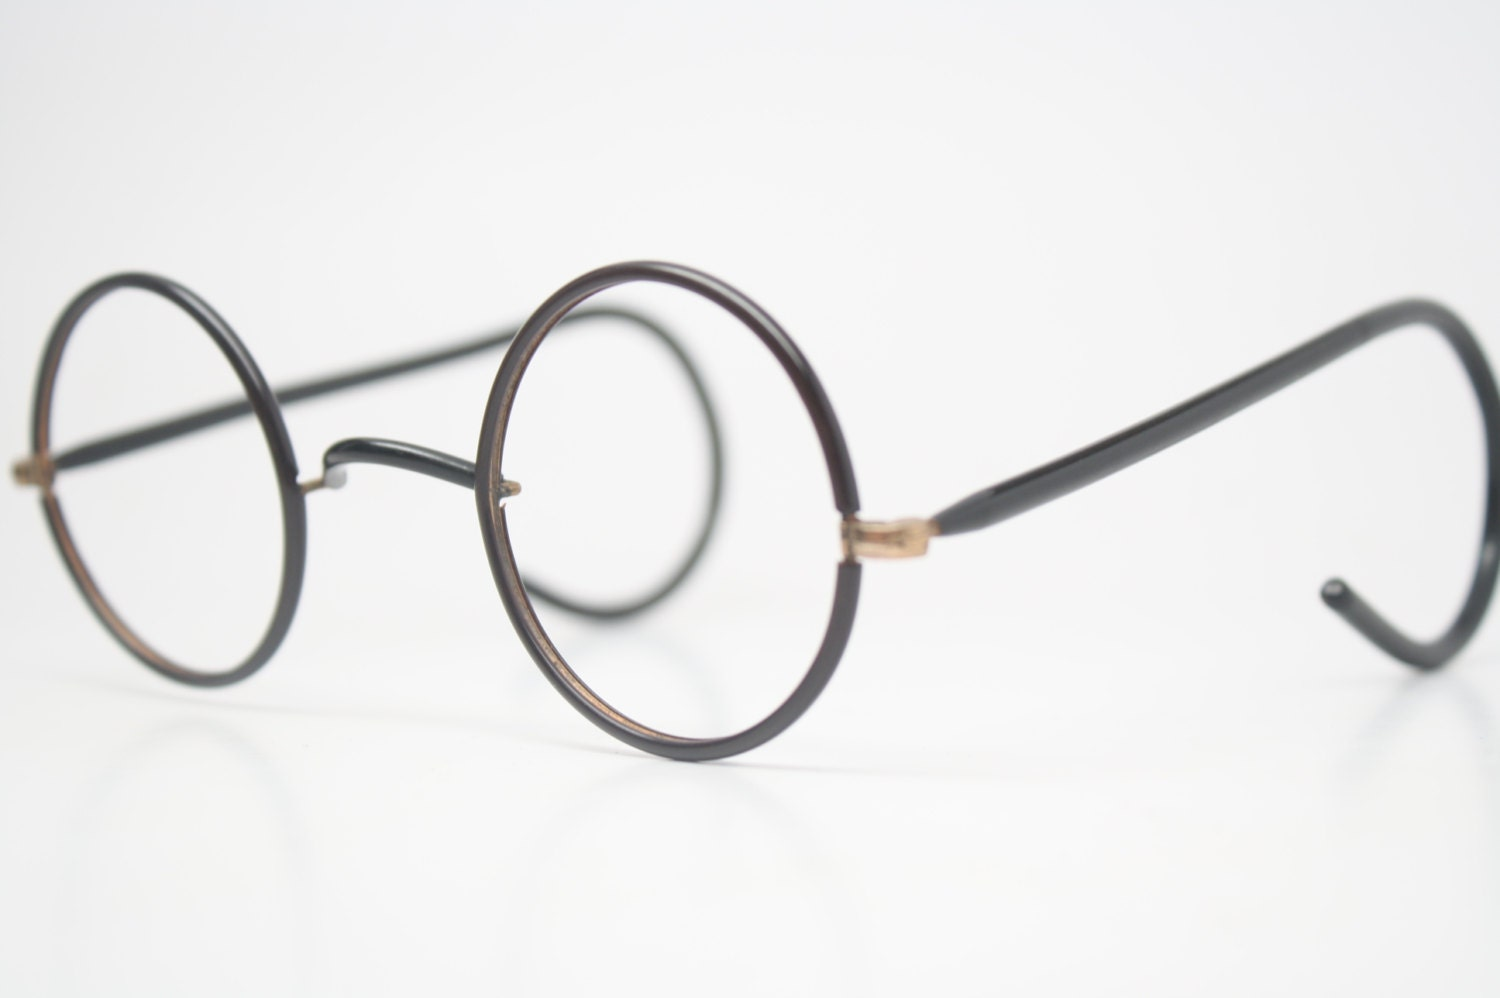 Old Glasses Frames New Lenses : Antique Eyeglasses Black & Gold Zyl Windsor Glasses New Old